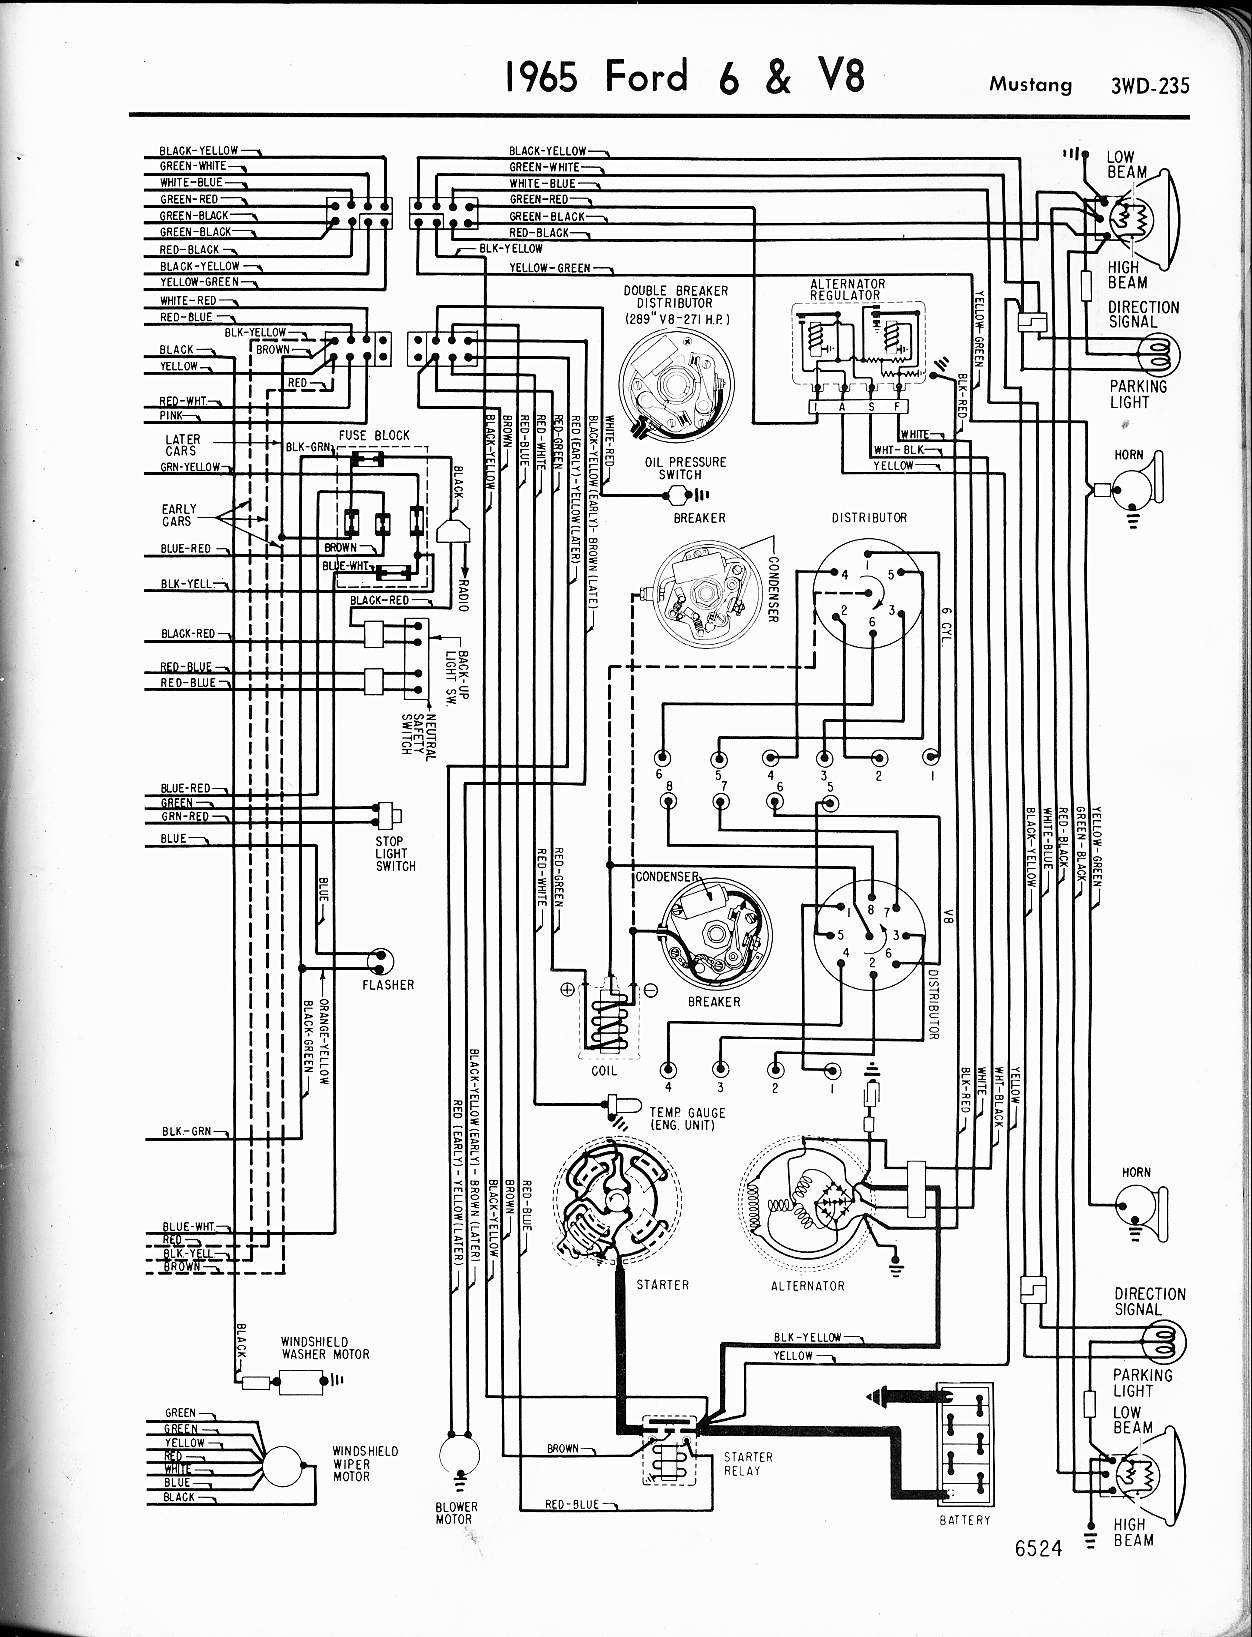 Ford Diagrams 2003 Impala Headlight Wiring Diagram 65 Mustang 2 Drawing B